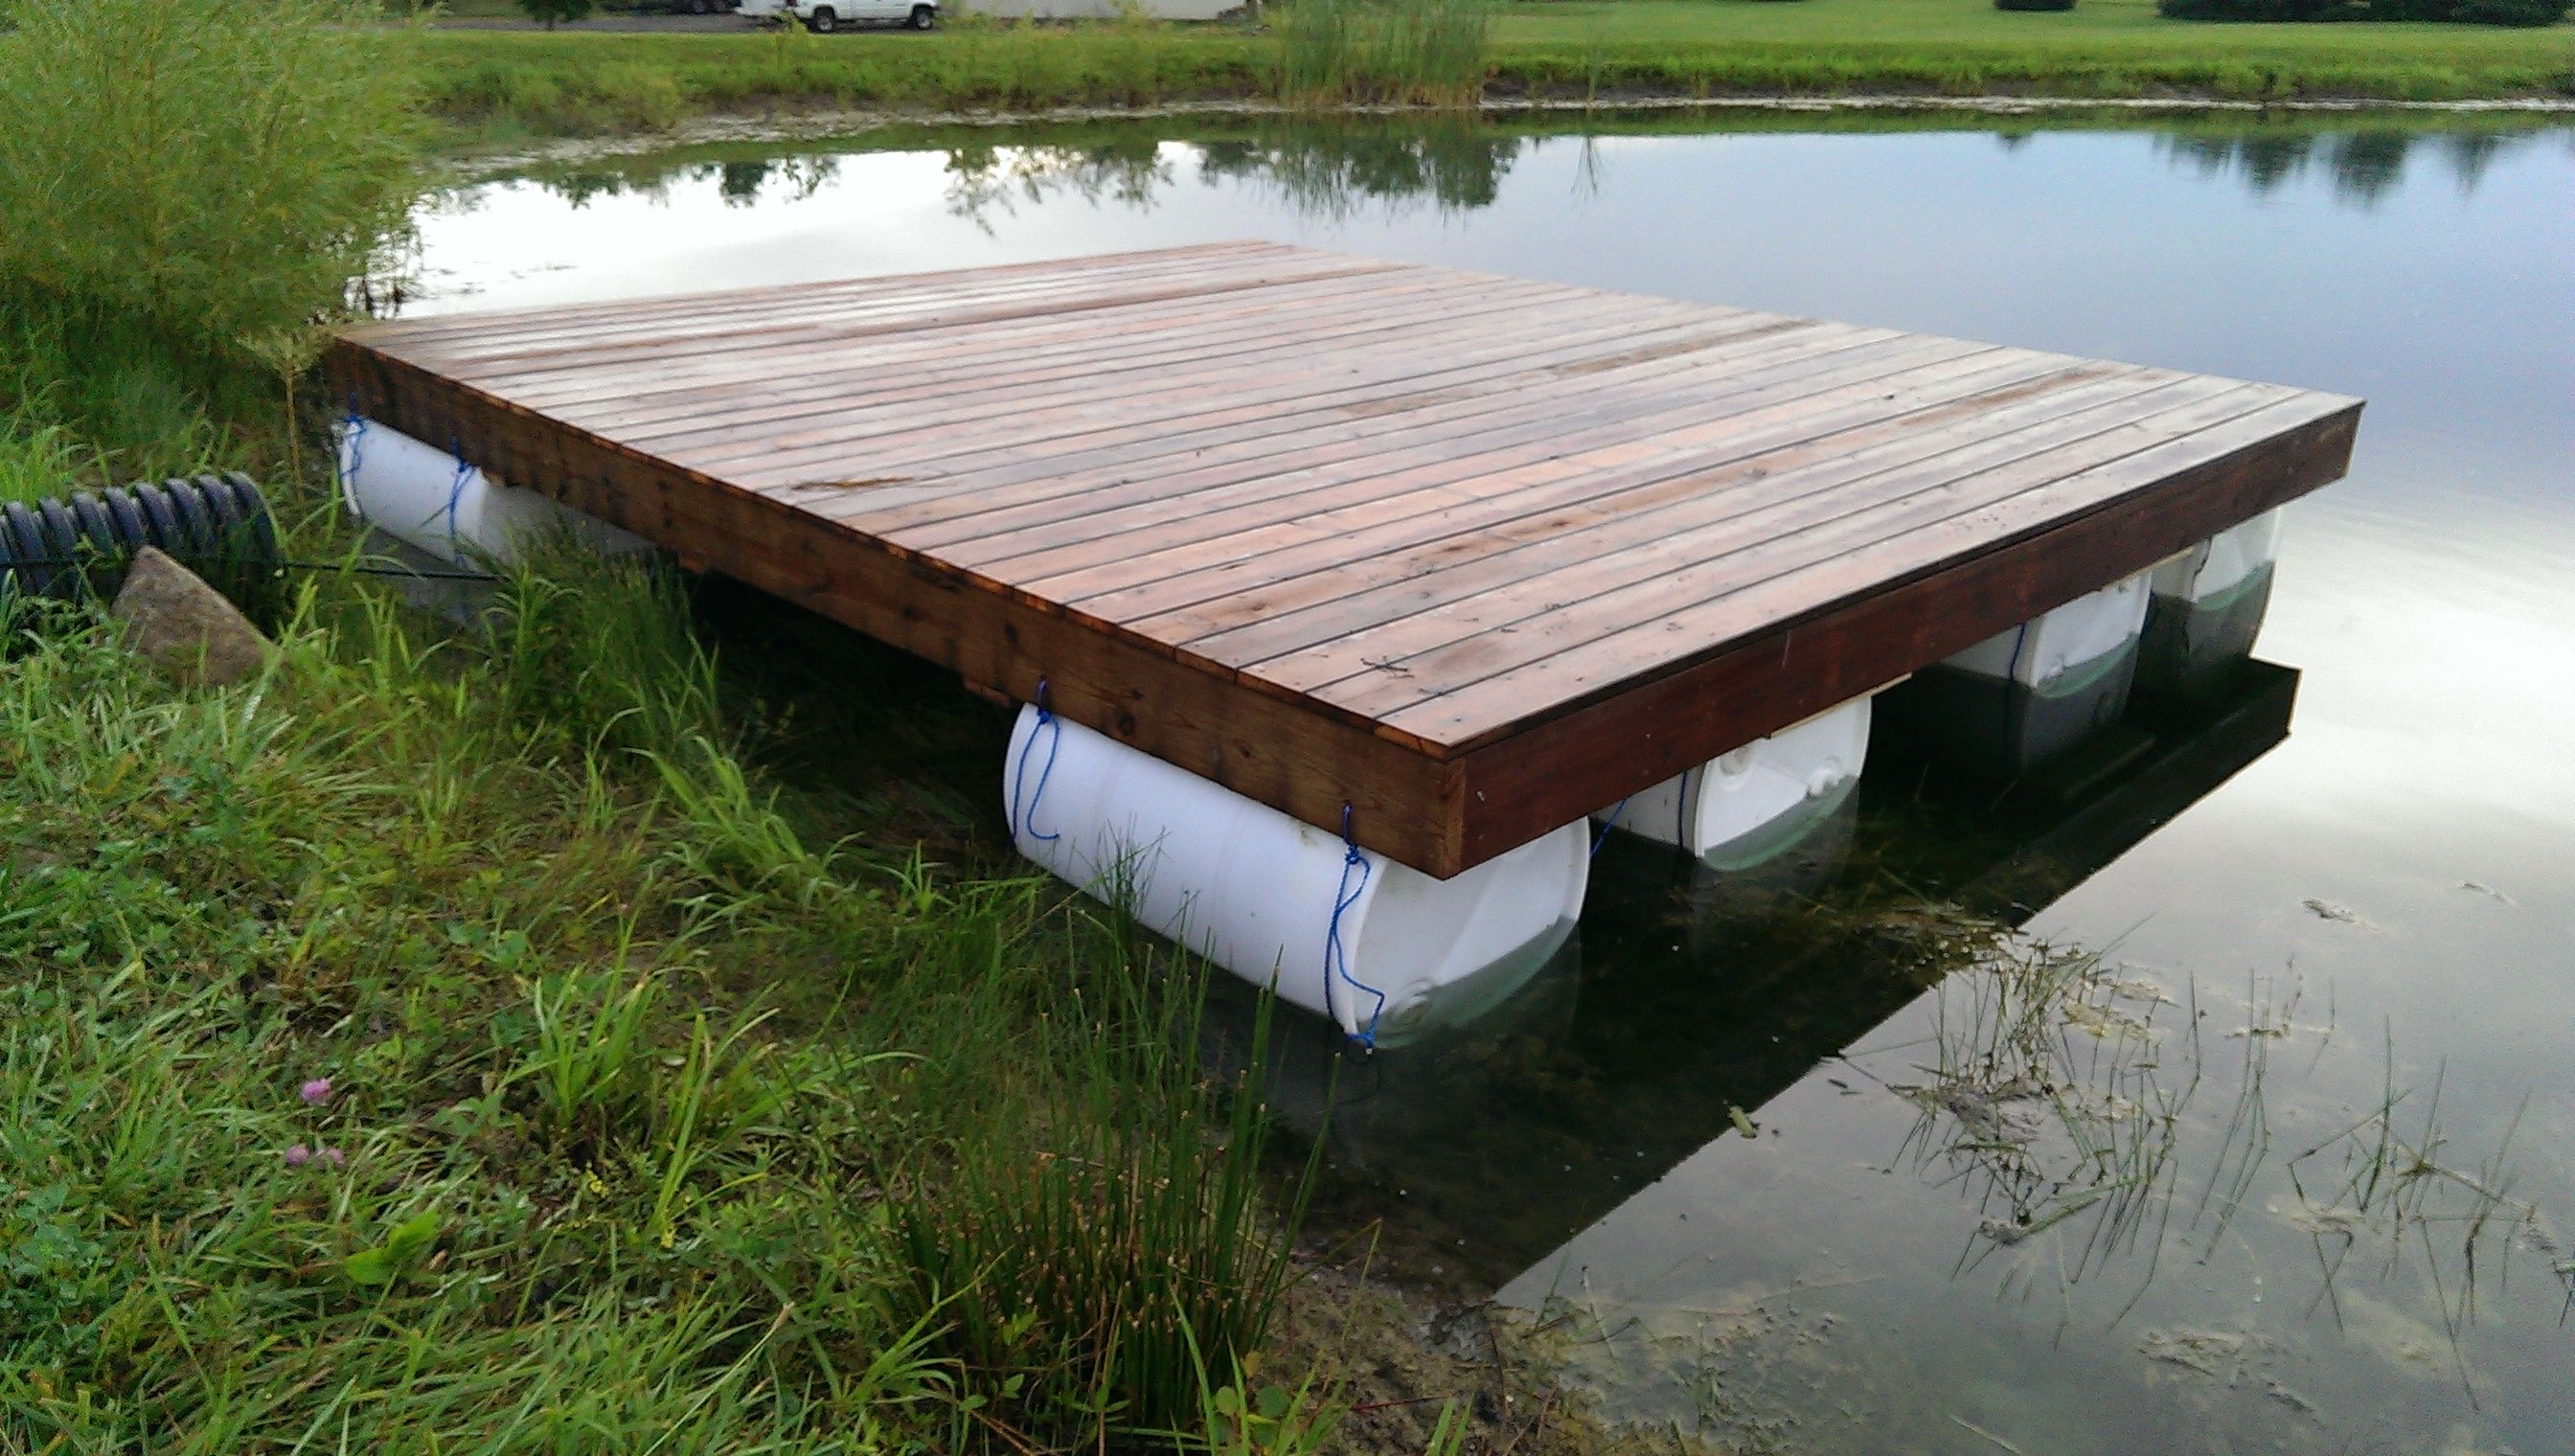 40 00 Floating Dock Completed Questions Observations Pond Boss Forum Floating Dock Plans Floating Dock Floating Raft